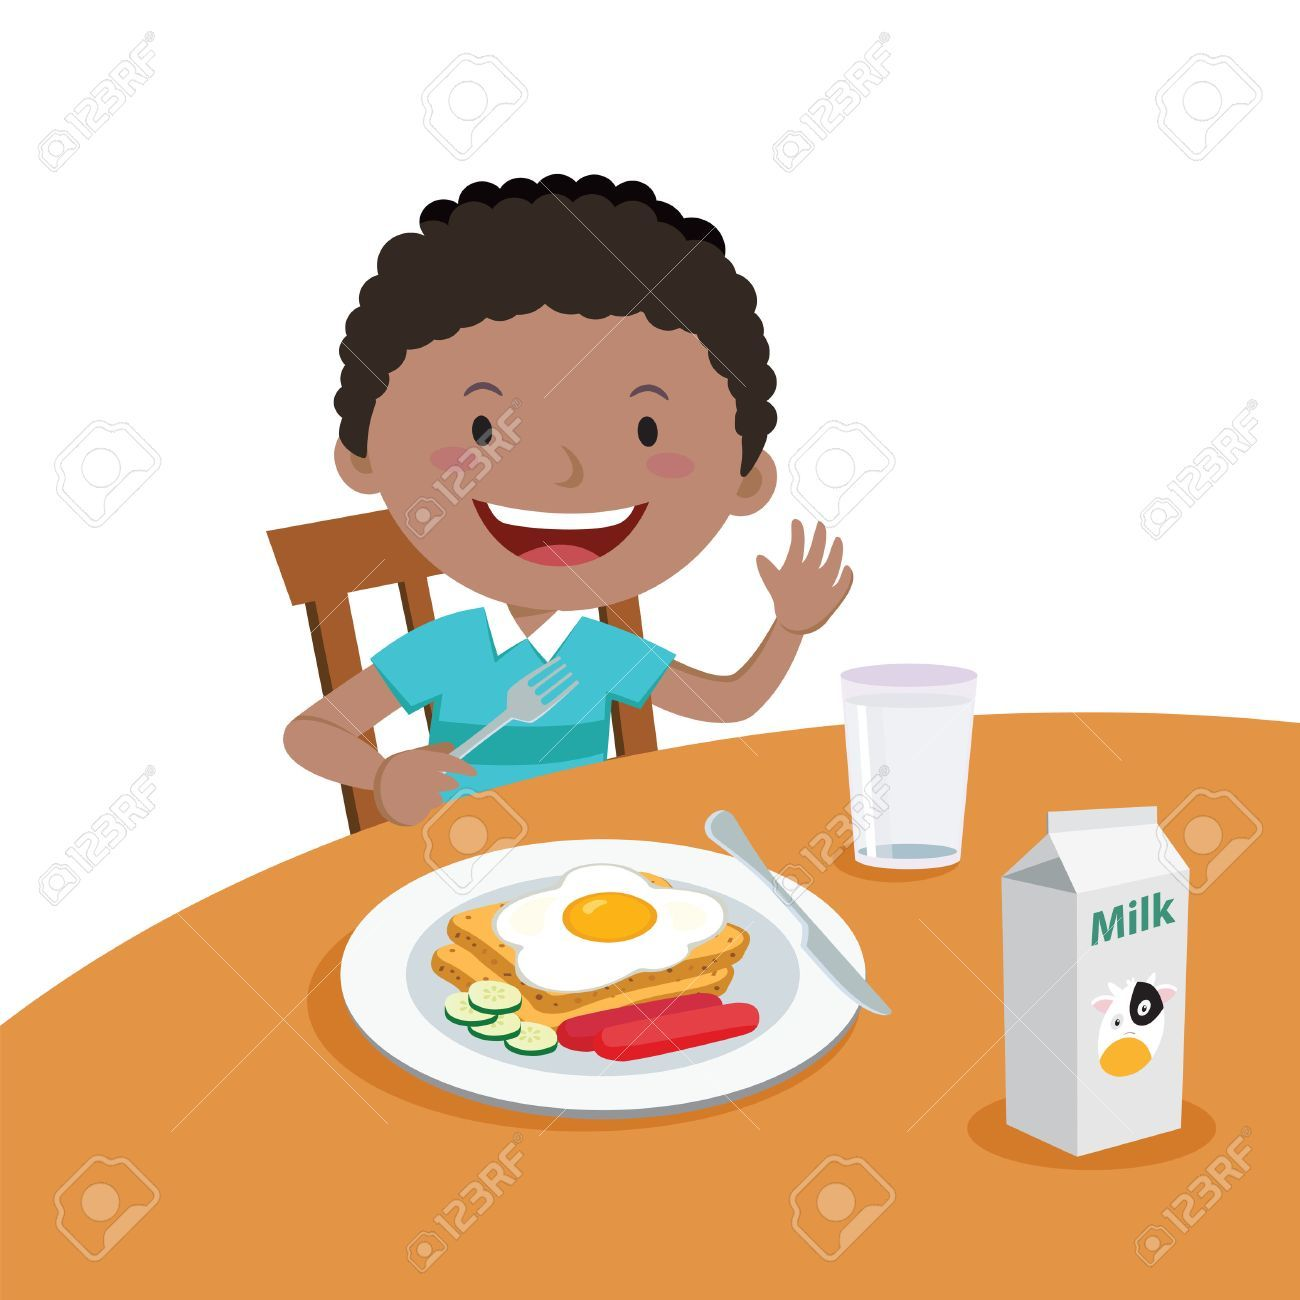 Boy eating breakfast clipart 2 » Clipart Portal.